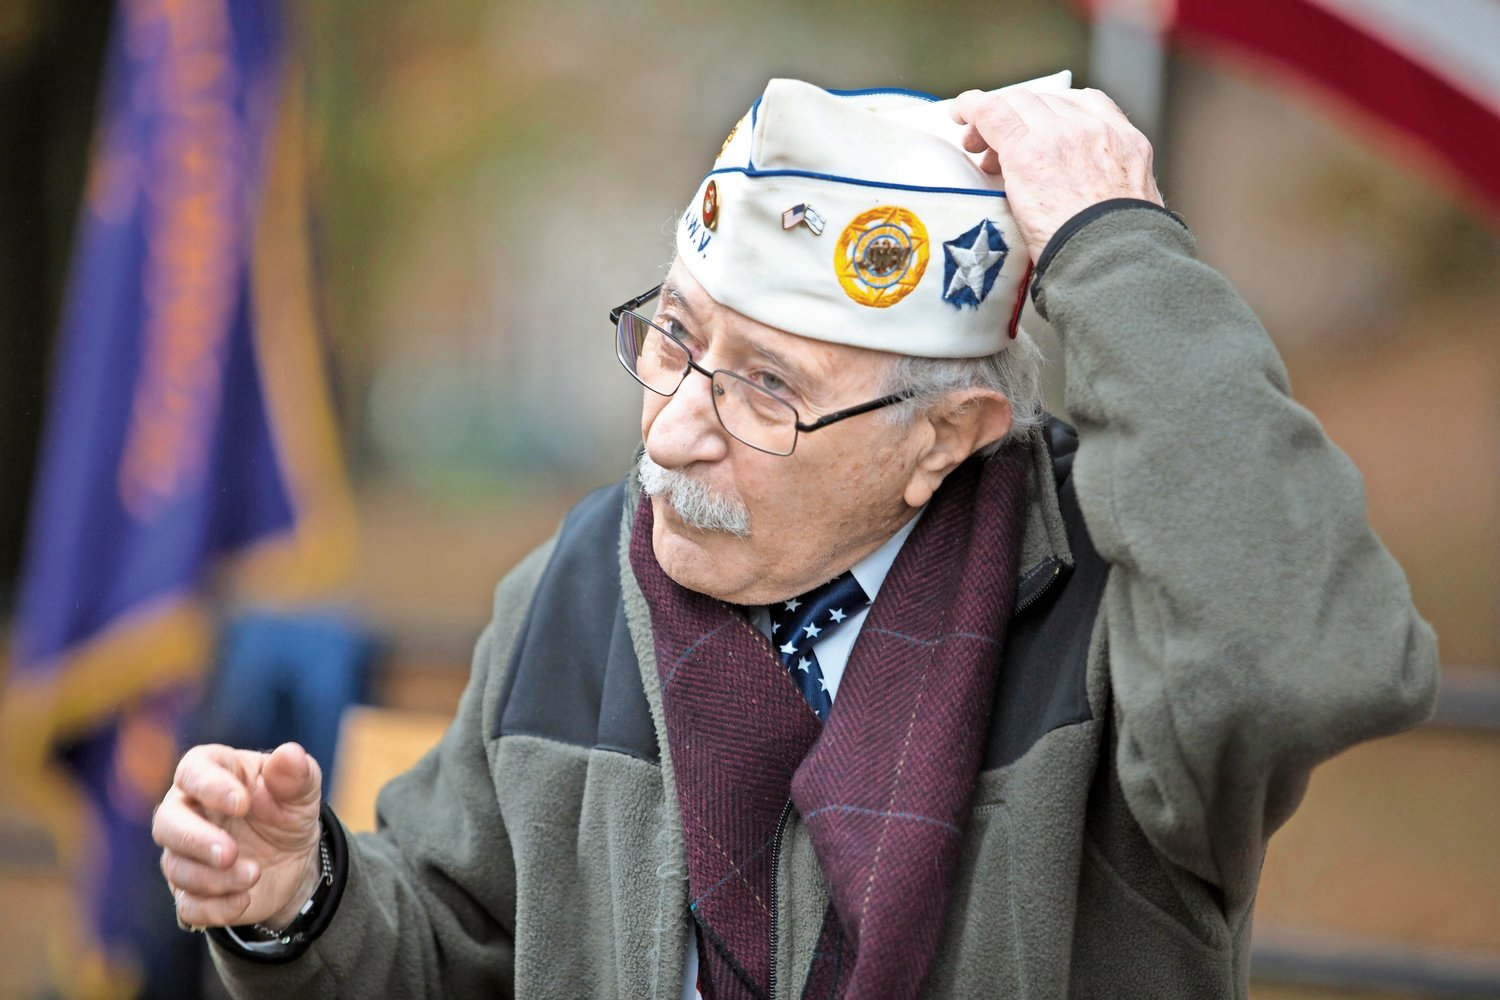 Herb Barrett puts on his cap before opening the Veterans Day ceremony at Van Cortlandt Park's Memorial Grove last year. Barrett first organized the ceremony in 2007 with his friend and fellow veteran Donald Tannen, who passed away in 2014.